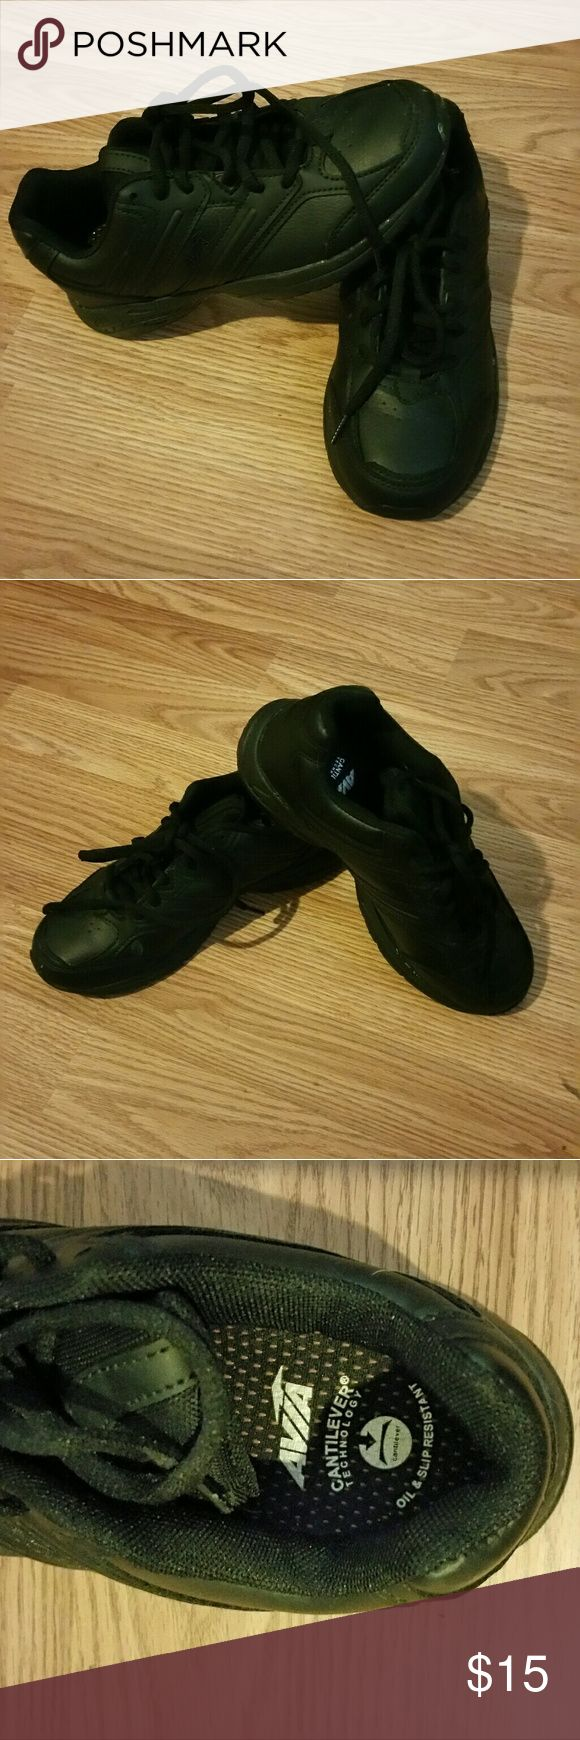 Oil & Slip resistant sneakers Black avia sneakers  Oil and slip resistant  Only worn twice.  No flaws. Avia Shoes Sneakers